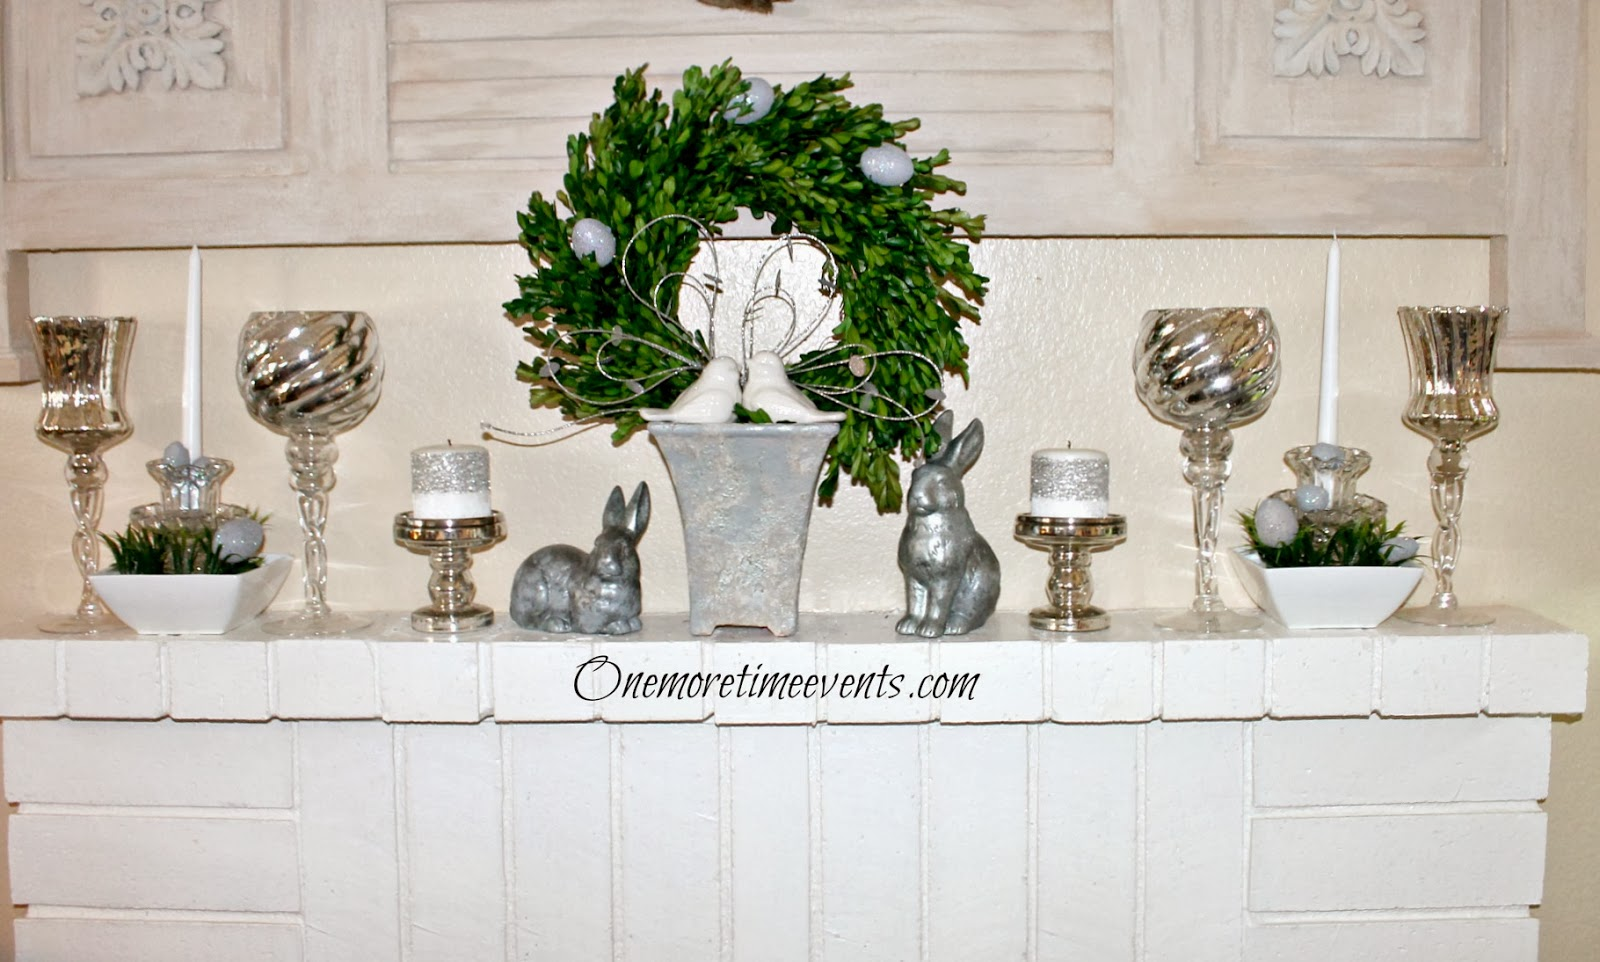 Decorating with Mercury Glass on Mantel at One More Time Events.com